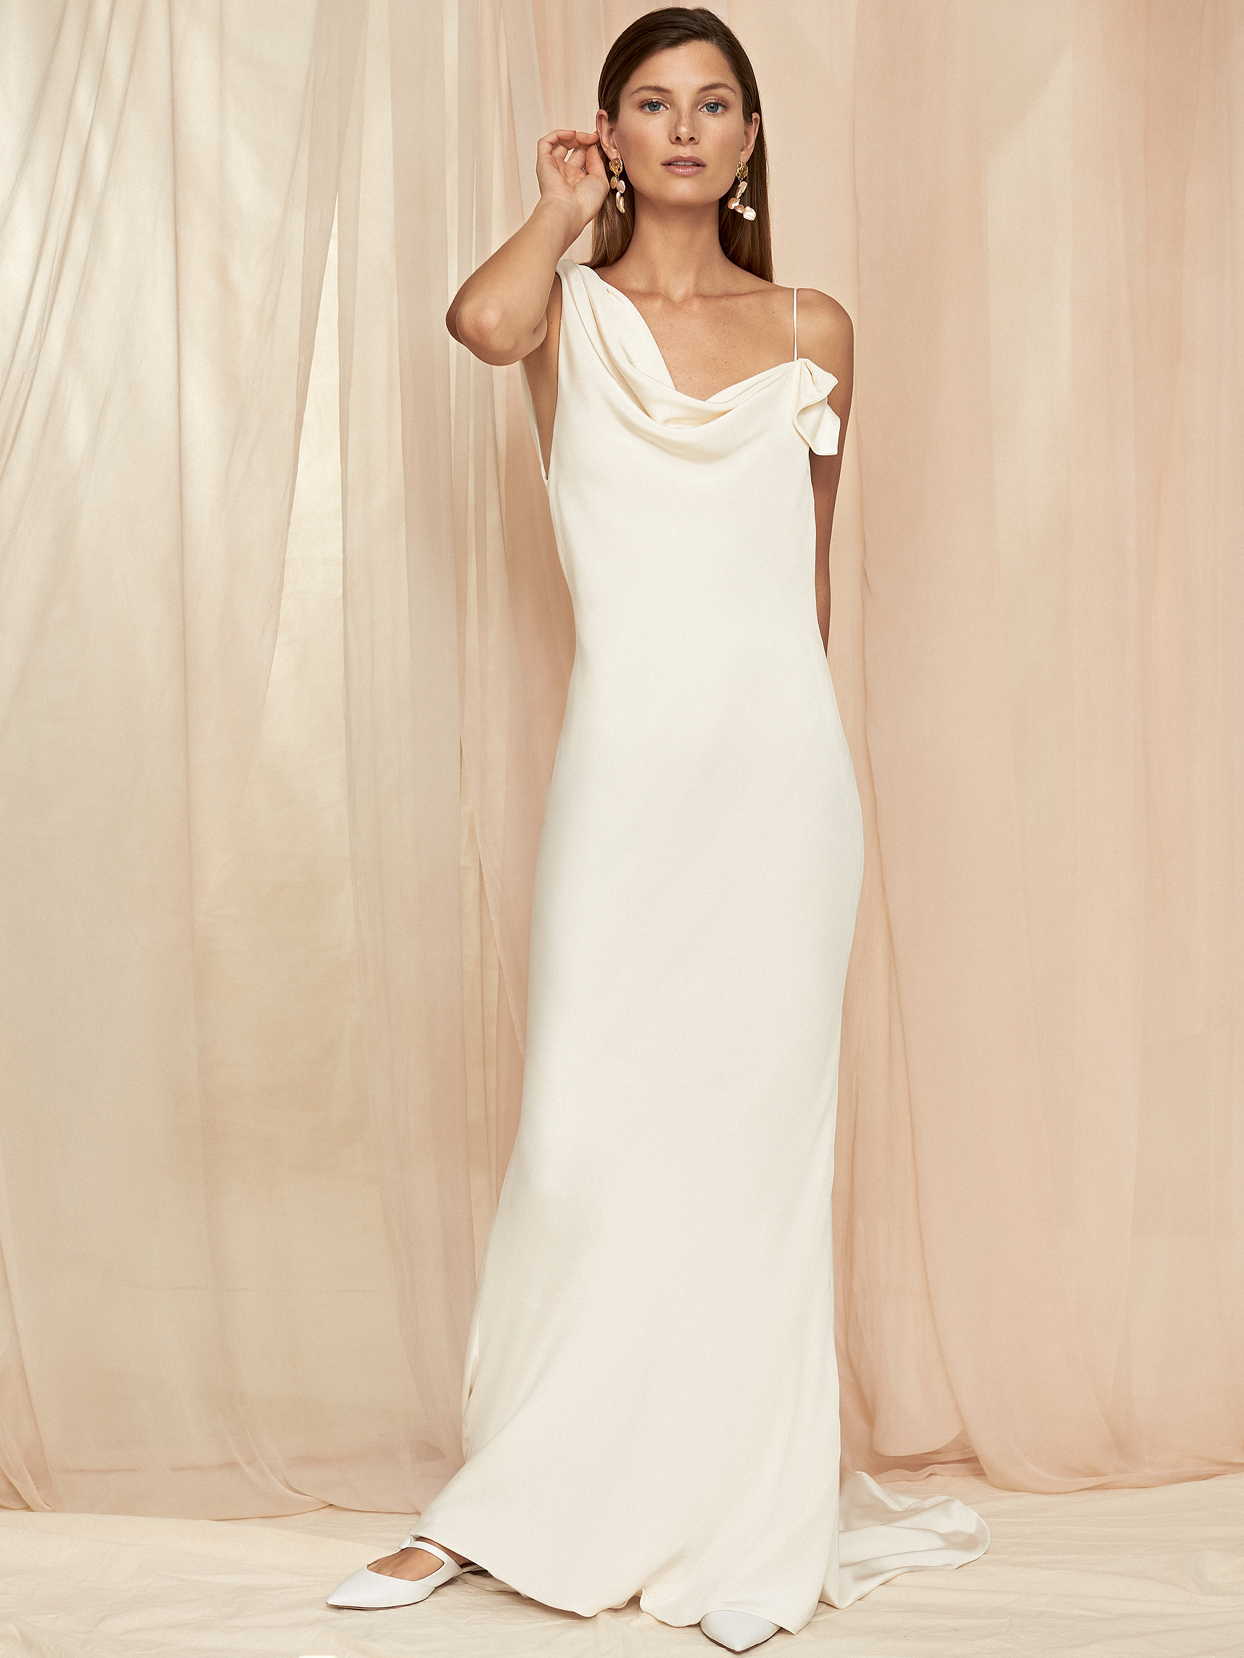 Savannah Miller cowl neck sheath wedding dress fall 2020